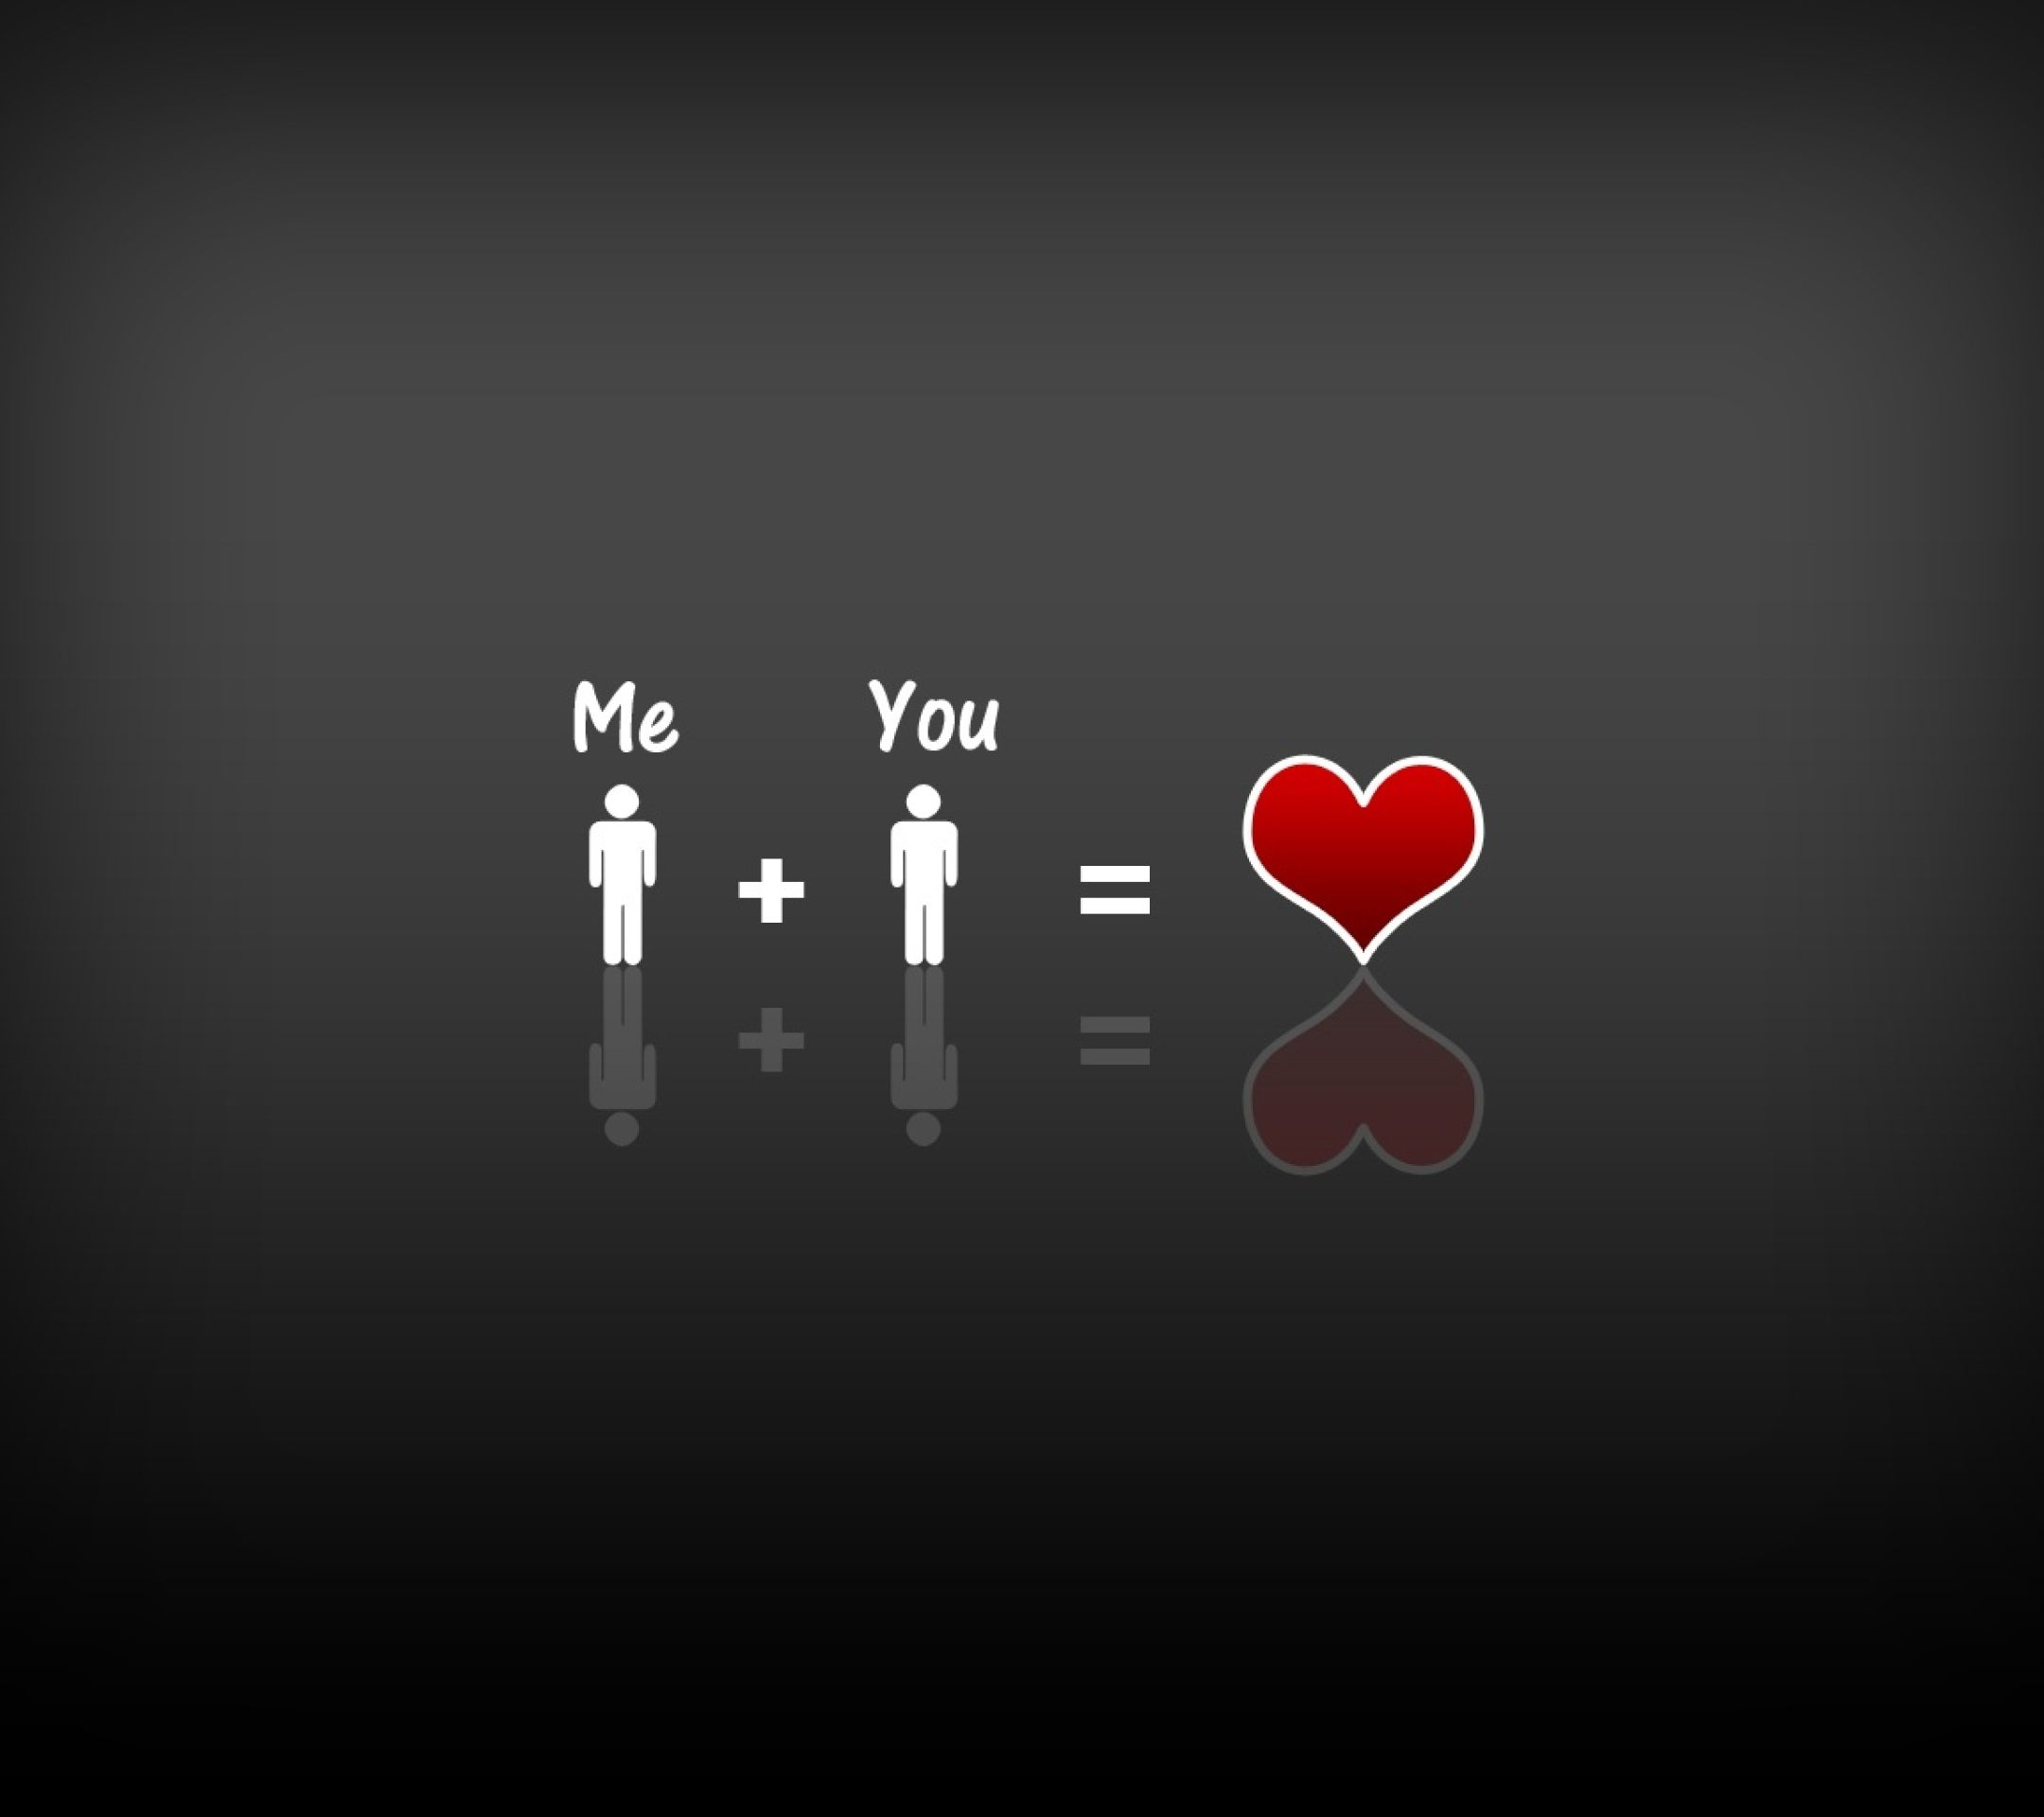 Me Plus You Tap To See More Love Love More Love Wallpapers Mobile9 Love Wallpaper Wallpaper Quotes Love Couple Wallpaper